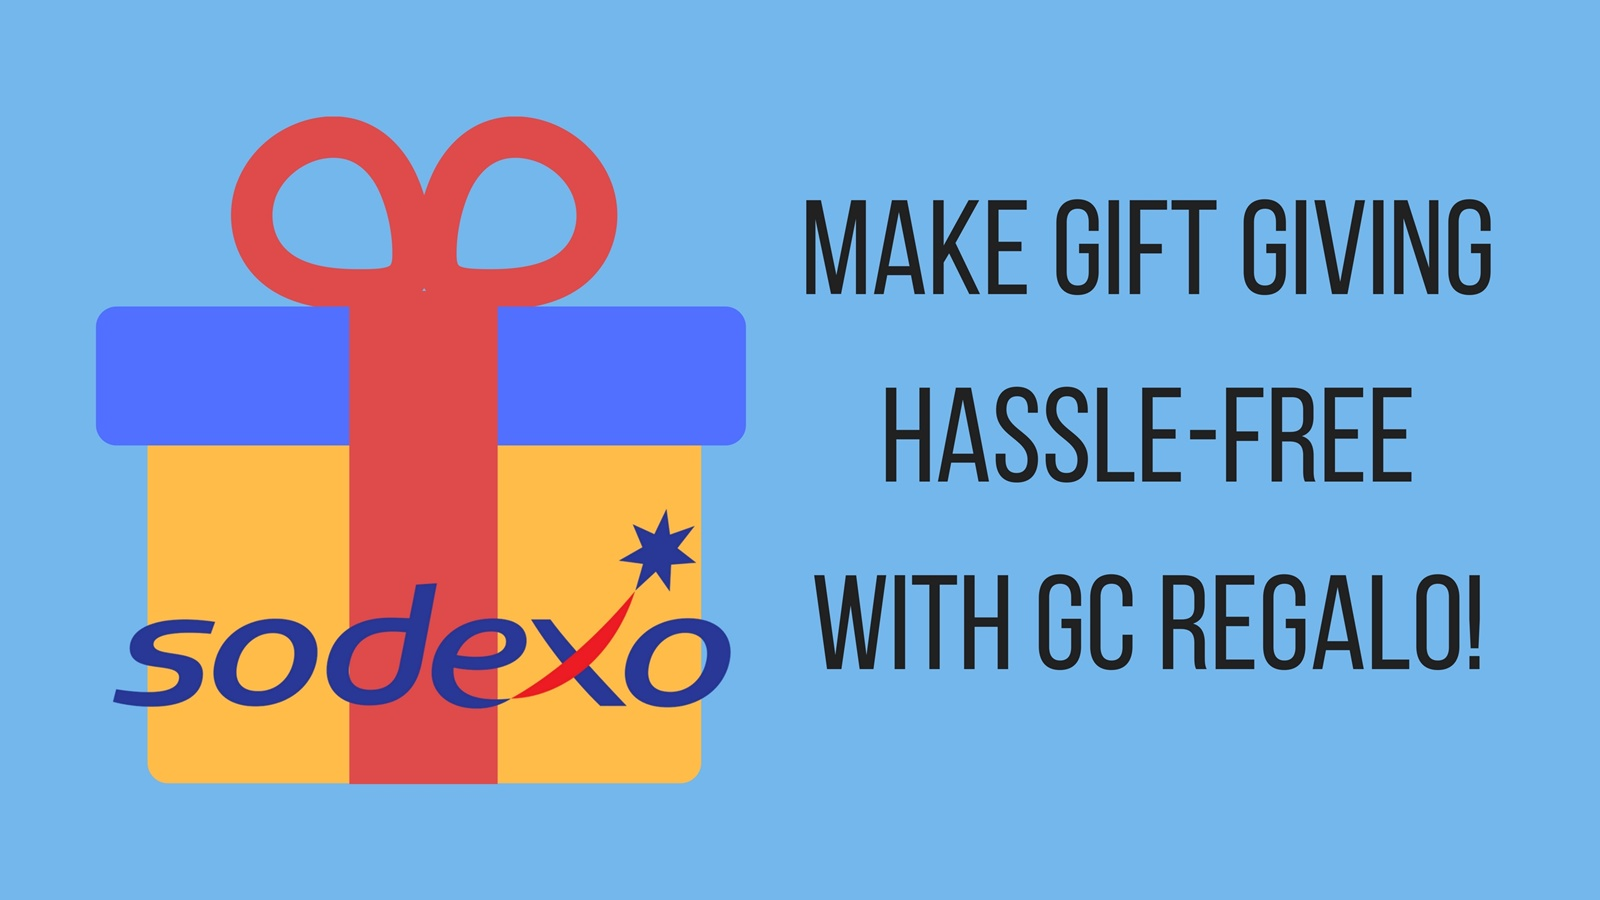 Make gift giving hassle free with gc regalo the world and the i grew up in a family where we are a close knit family on both my mothers and fathers side we would go on occasions and other events especially reunions negle Choice Image